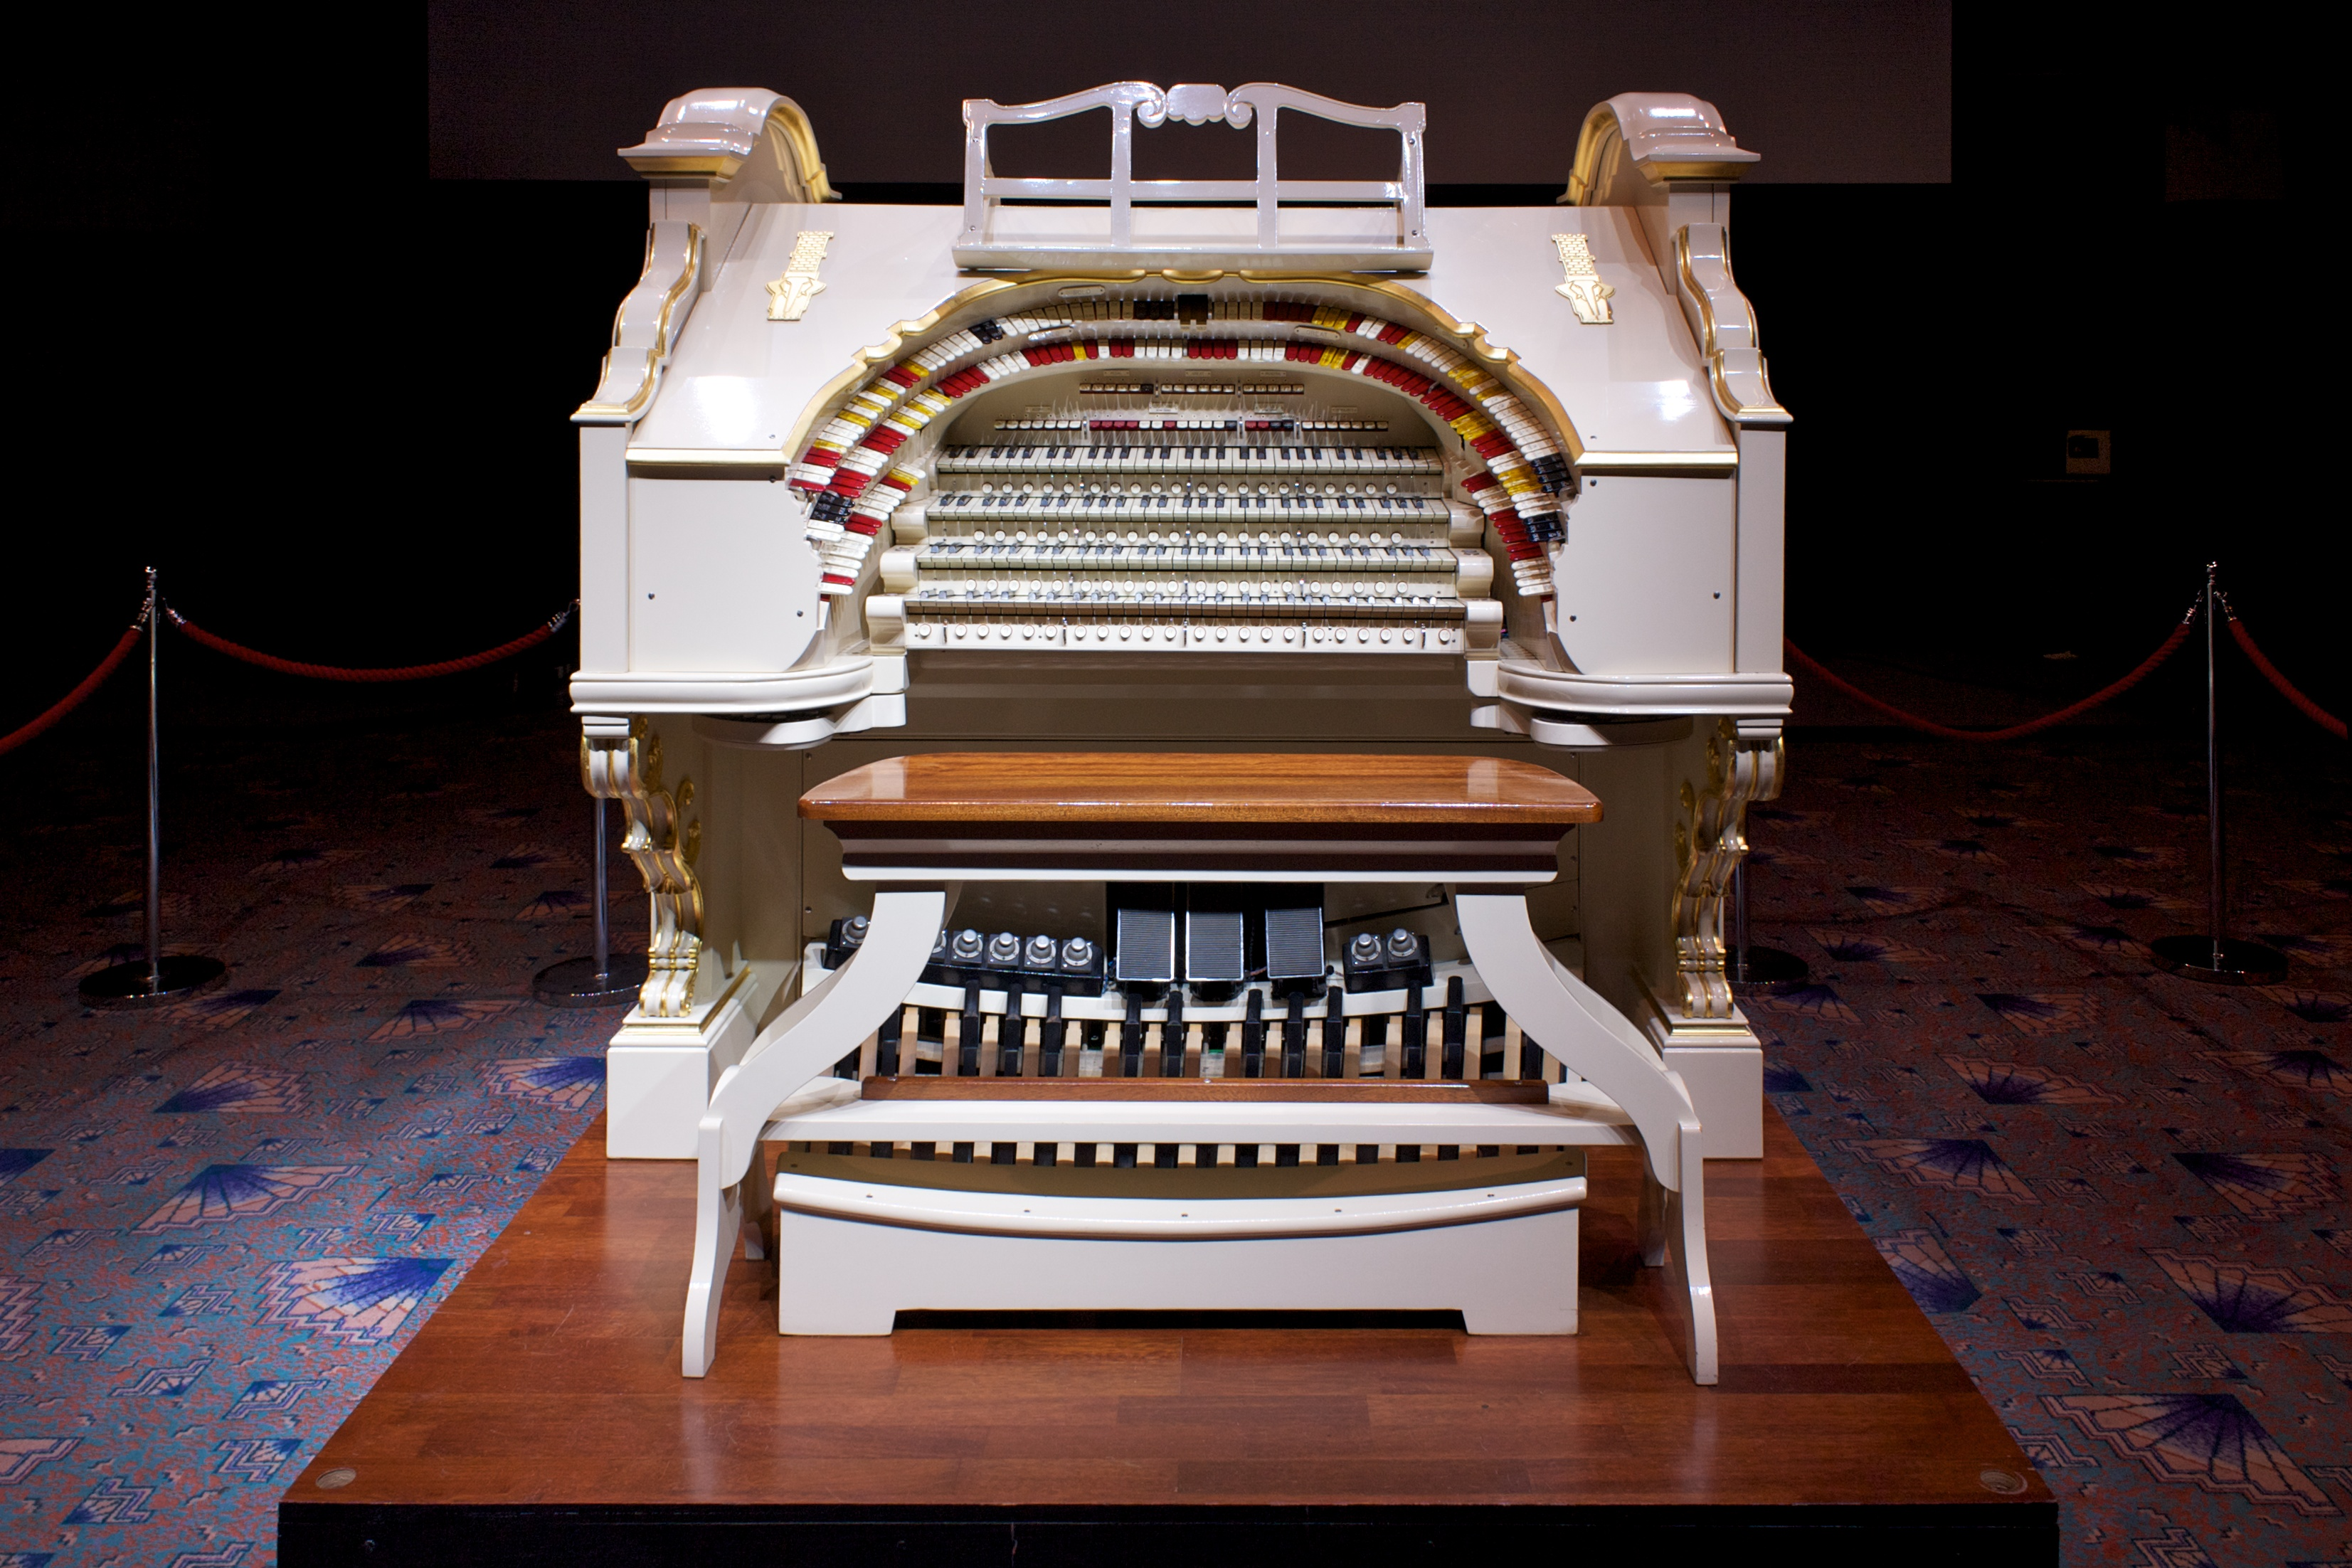 File:Mighty Wurlitzer Opus 2184 console, Troxy.jpg